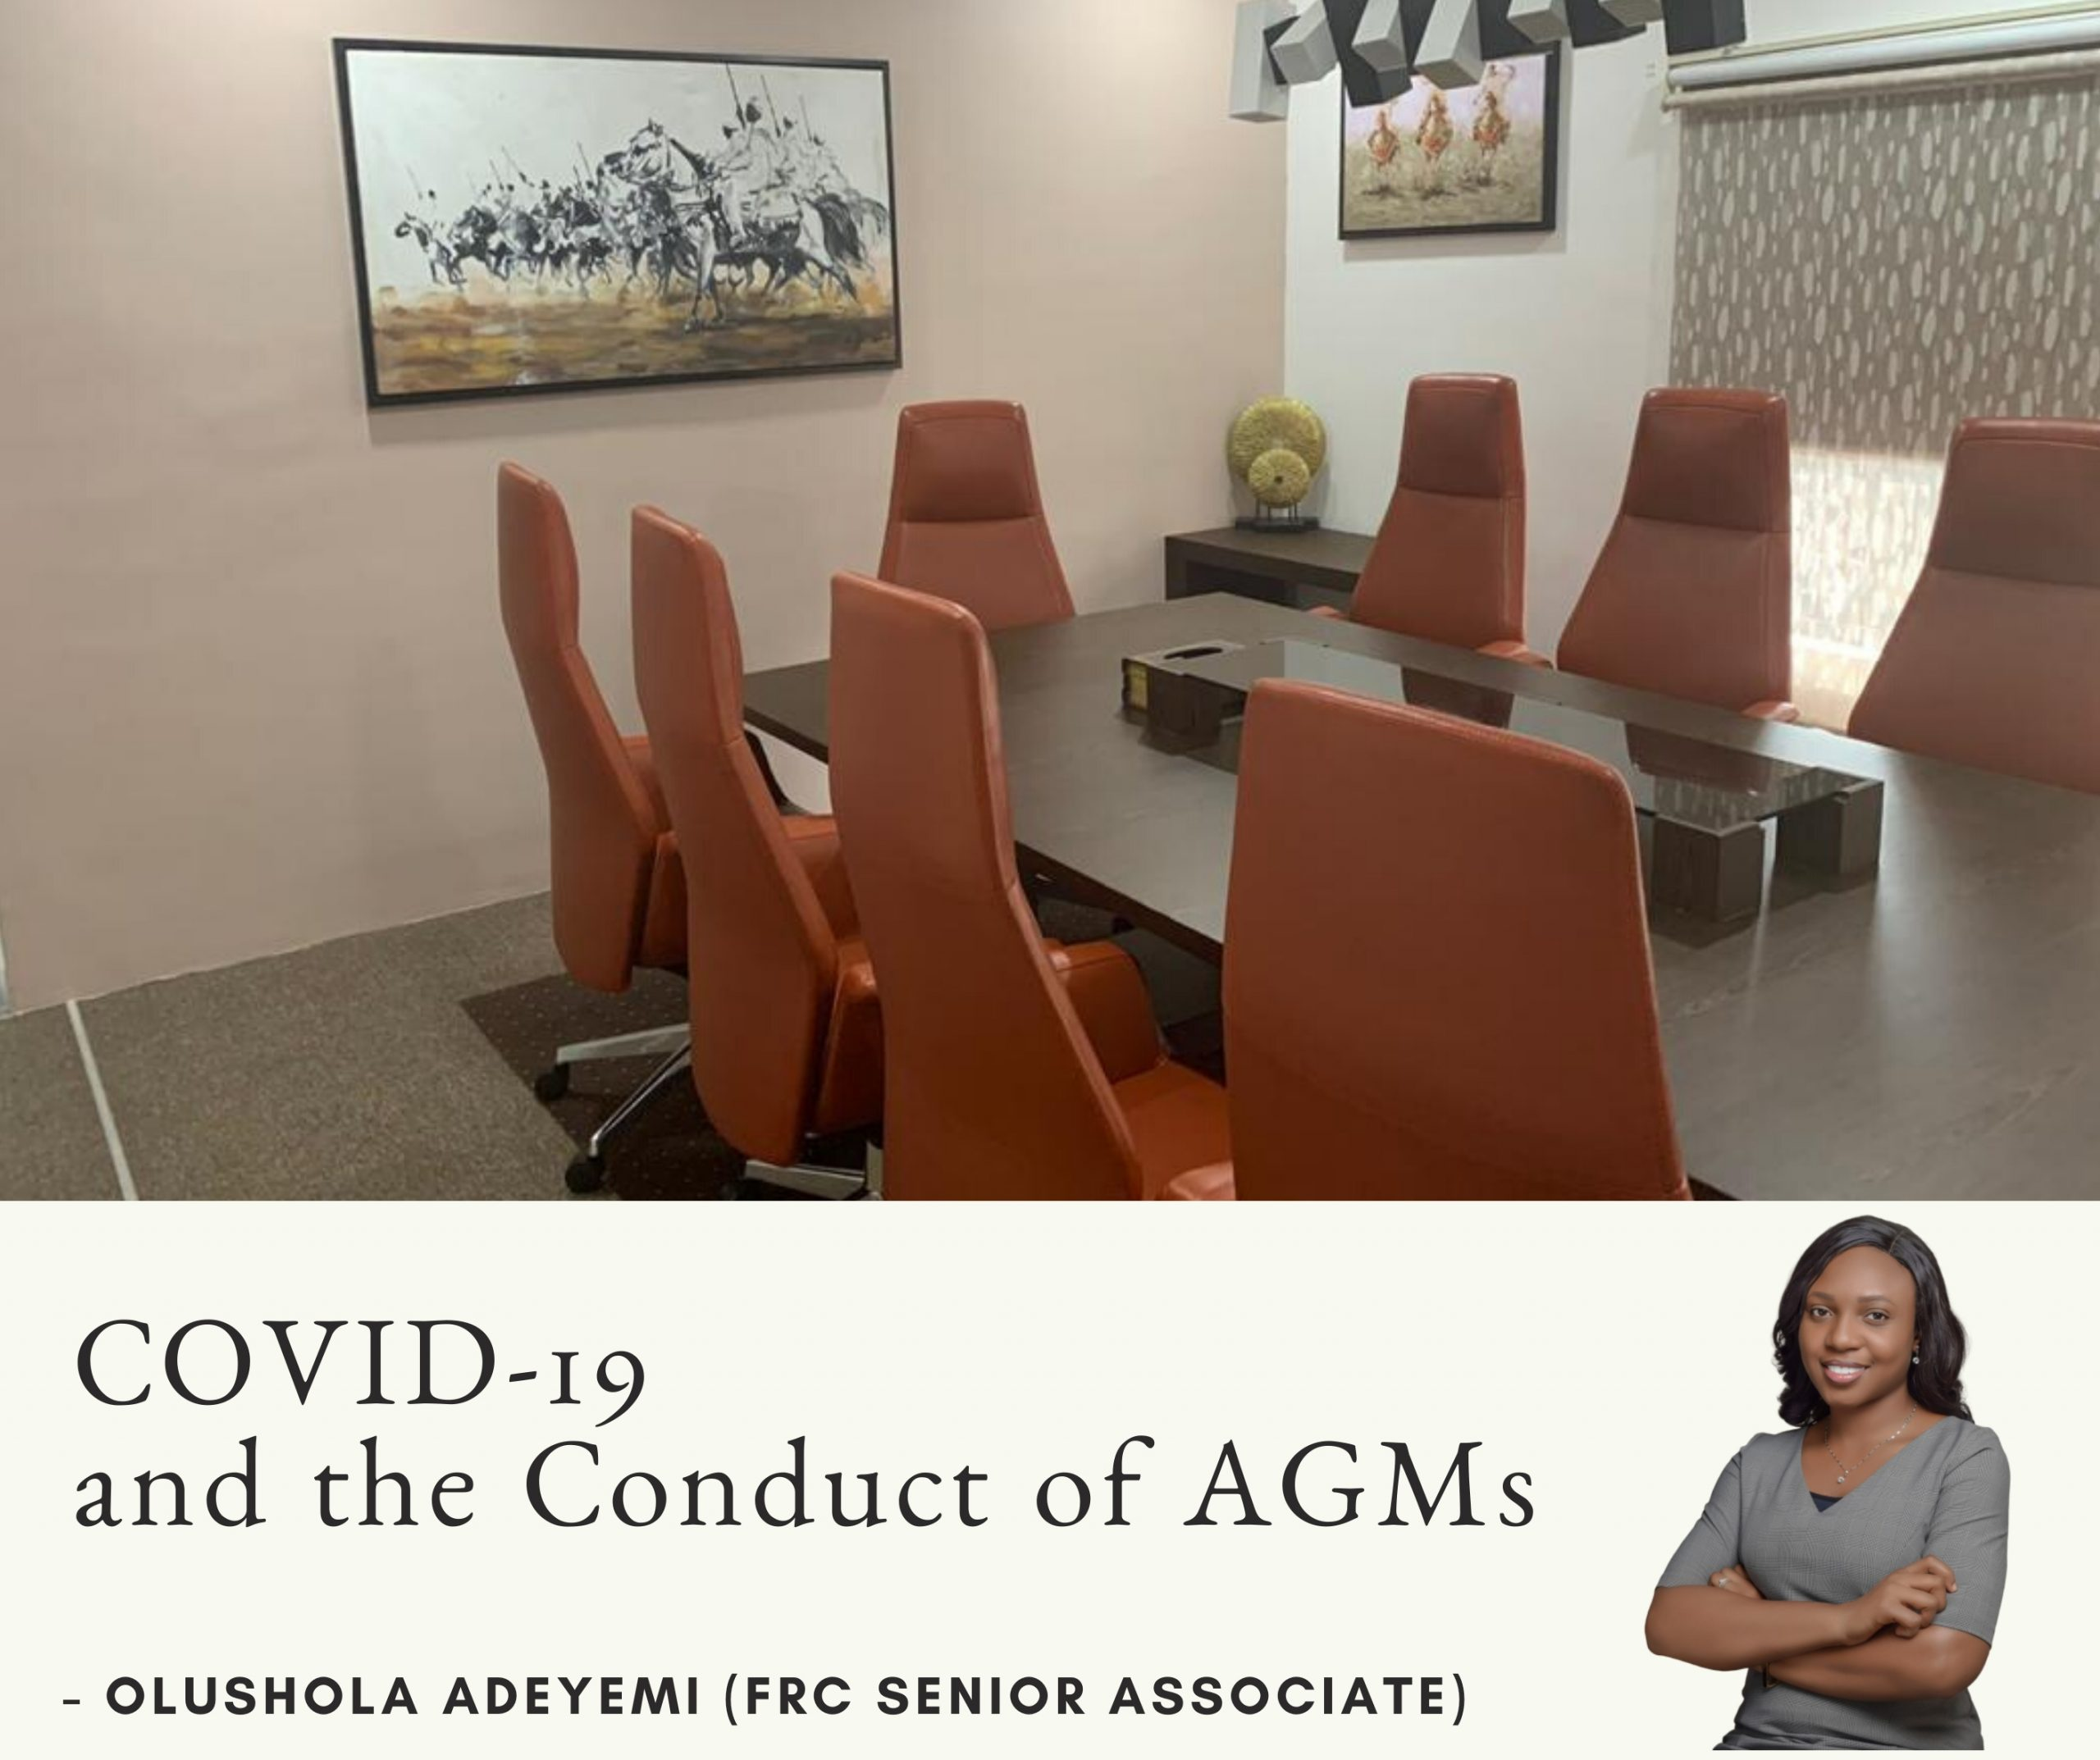 COVID-19 and the Conduct of AGMs